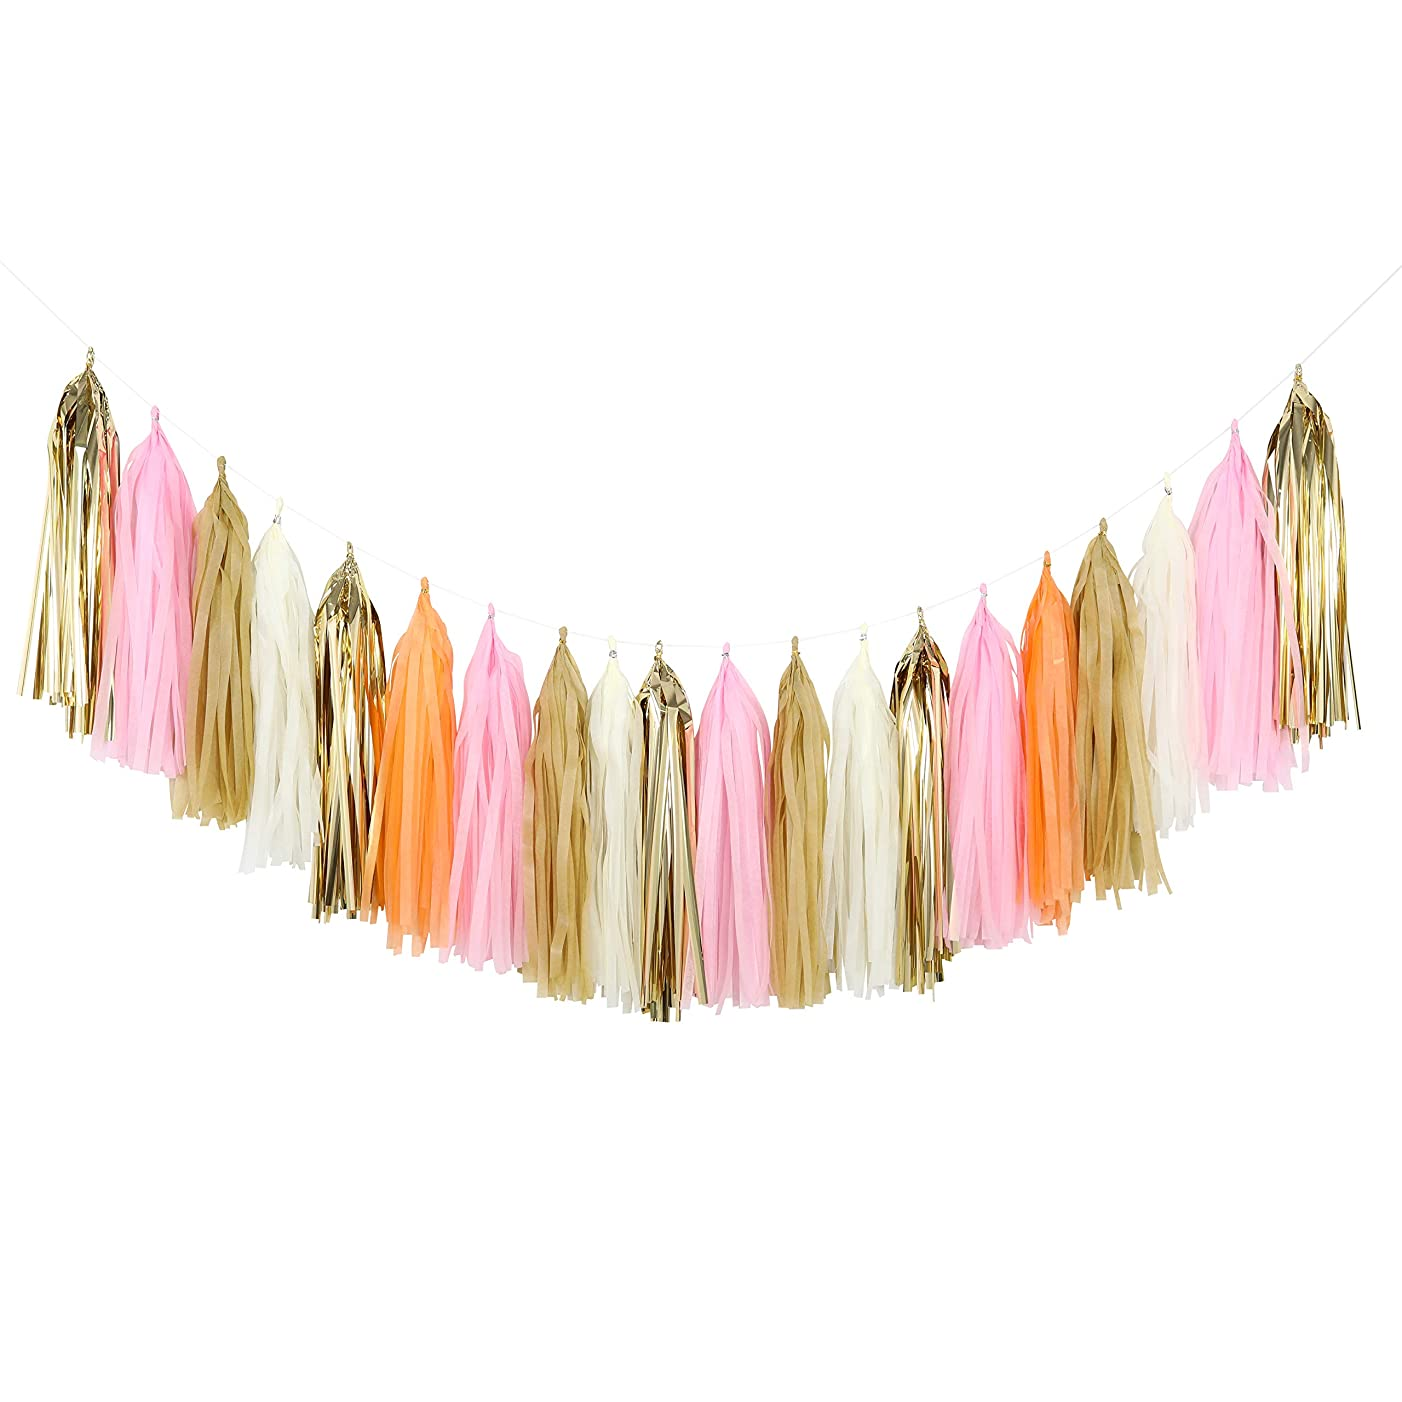 Fonder Mols 25pcs Rustic Tissue Paper Tassels Garland DIY Kit for Vintage Wedding, Girl First Birthday Decoration, Pink and Peach Baby Shower Decor A19